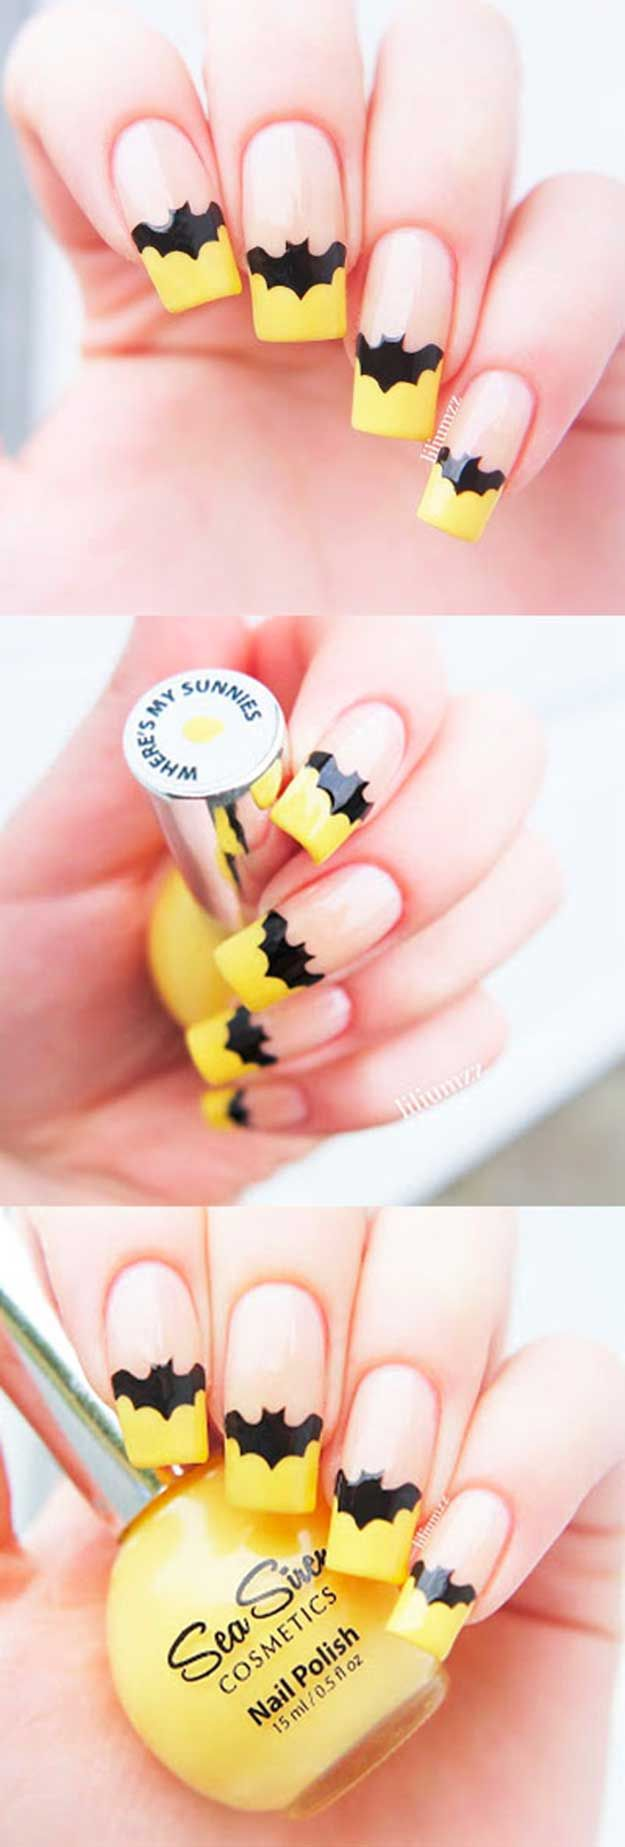 French Nail Art with a Twist - French Nail Art With Unique Design- Yellow Bat-Nails - Yellow Batnails Best French Manicure Tutorials To Do At Home - DIY Scalloped French Nails - Nail Art Designs and Ideas - Awesome DIY Tutorials and Step By Step Guides on How To Do the Perfect French Manicures - Articles on Easy Nailart Style Designs and Polish Products - Get Your Nails Looking Like They Came Out of The Top Salons - https://thegoddess.com/french-manicures-at-home